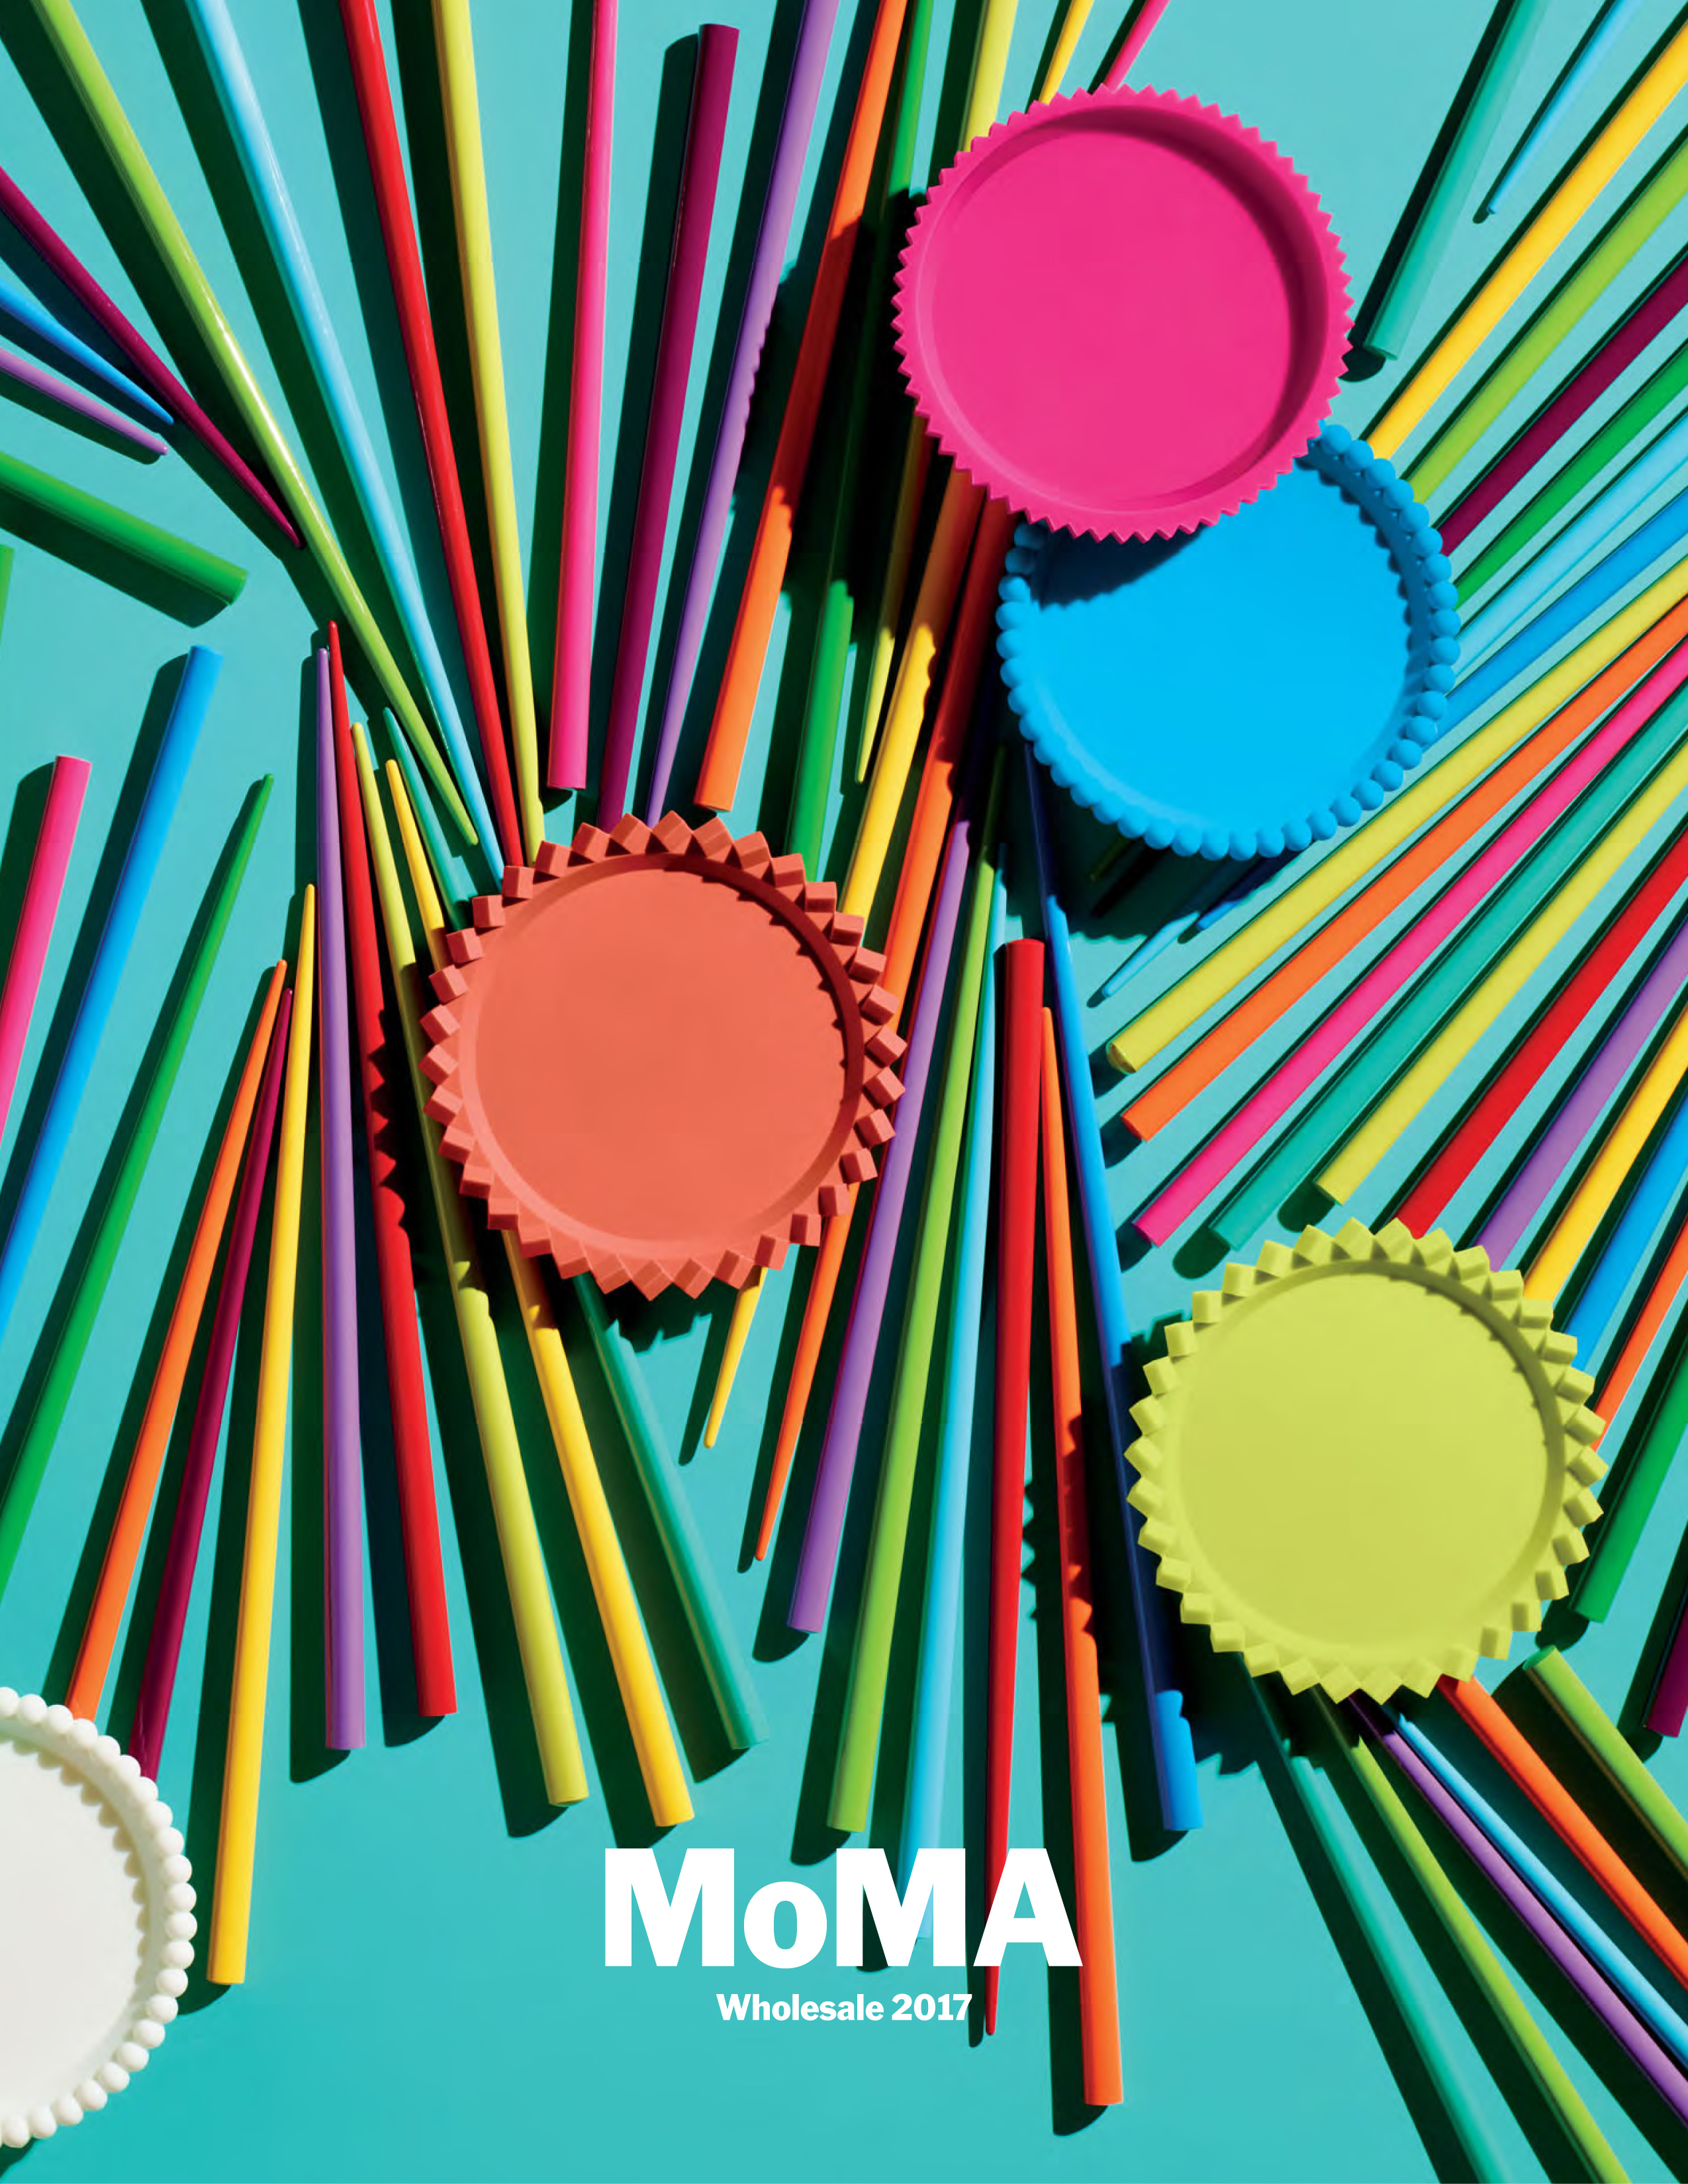 MOMA Wholesale 2017 poster with brightly colored sticks and round shapes on a cyan background.